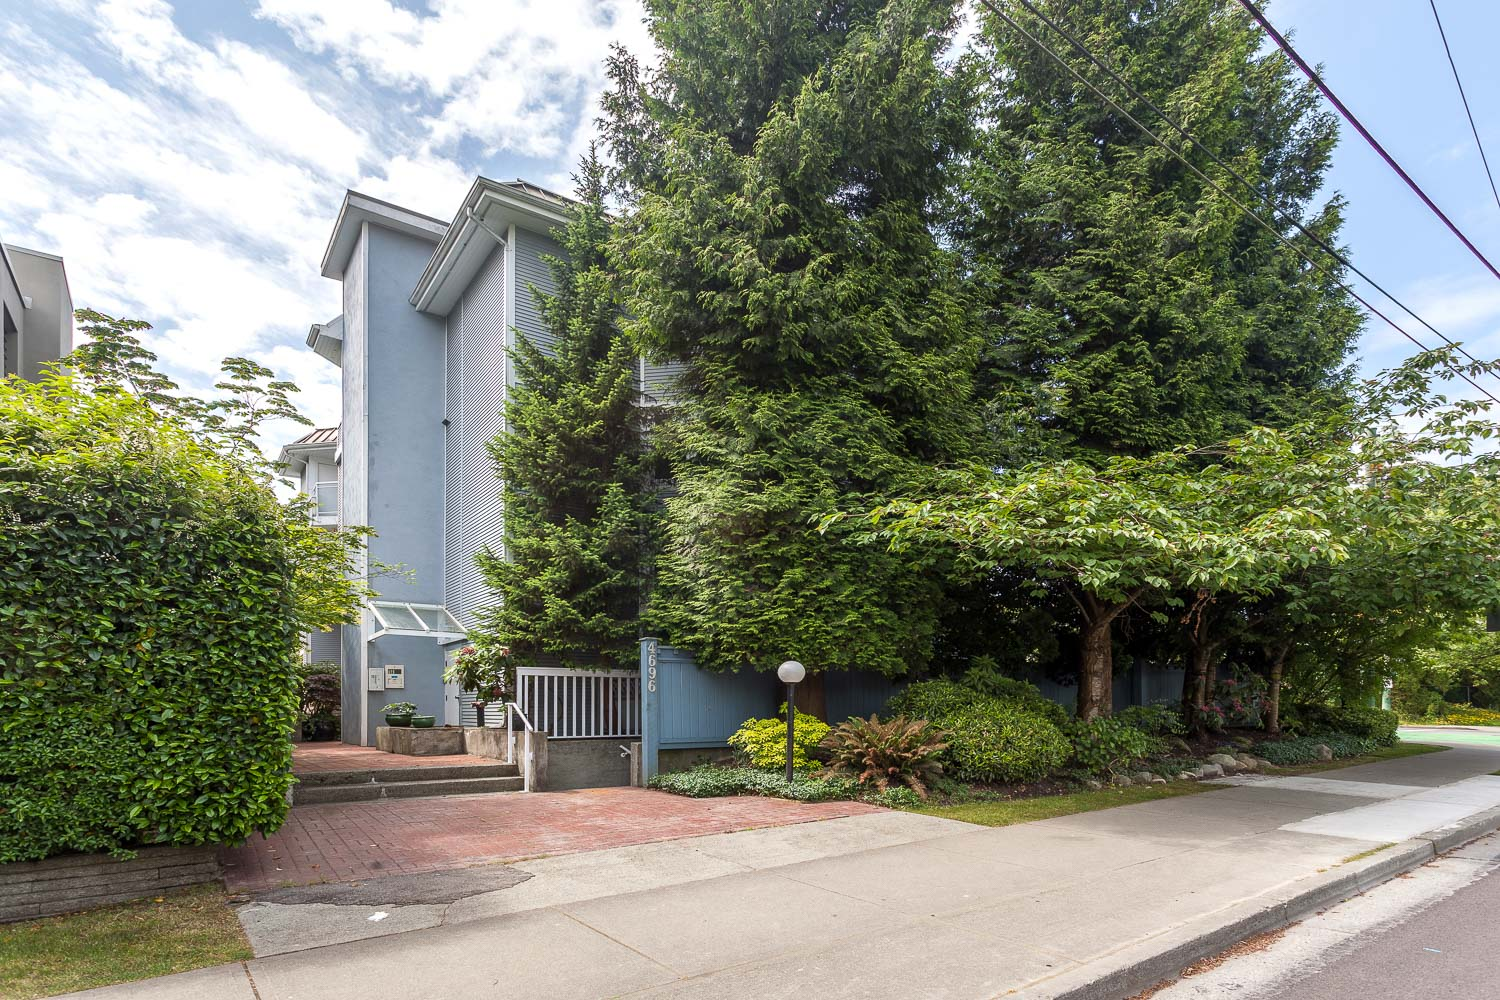 101 4696 W 10TH AVENUE - Point Grey Apartment/Condo for sale, 2 Bedrooms (R2203906) #22